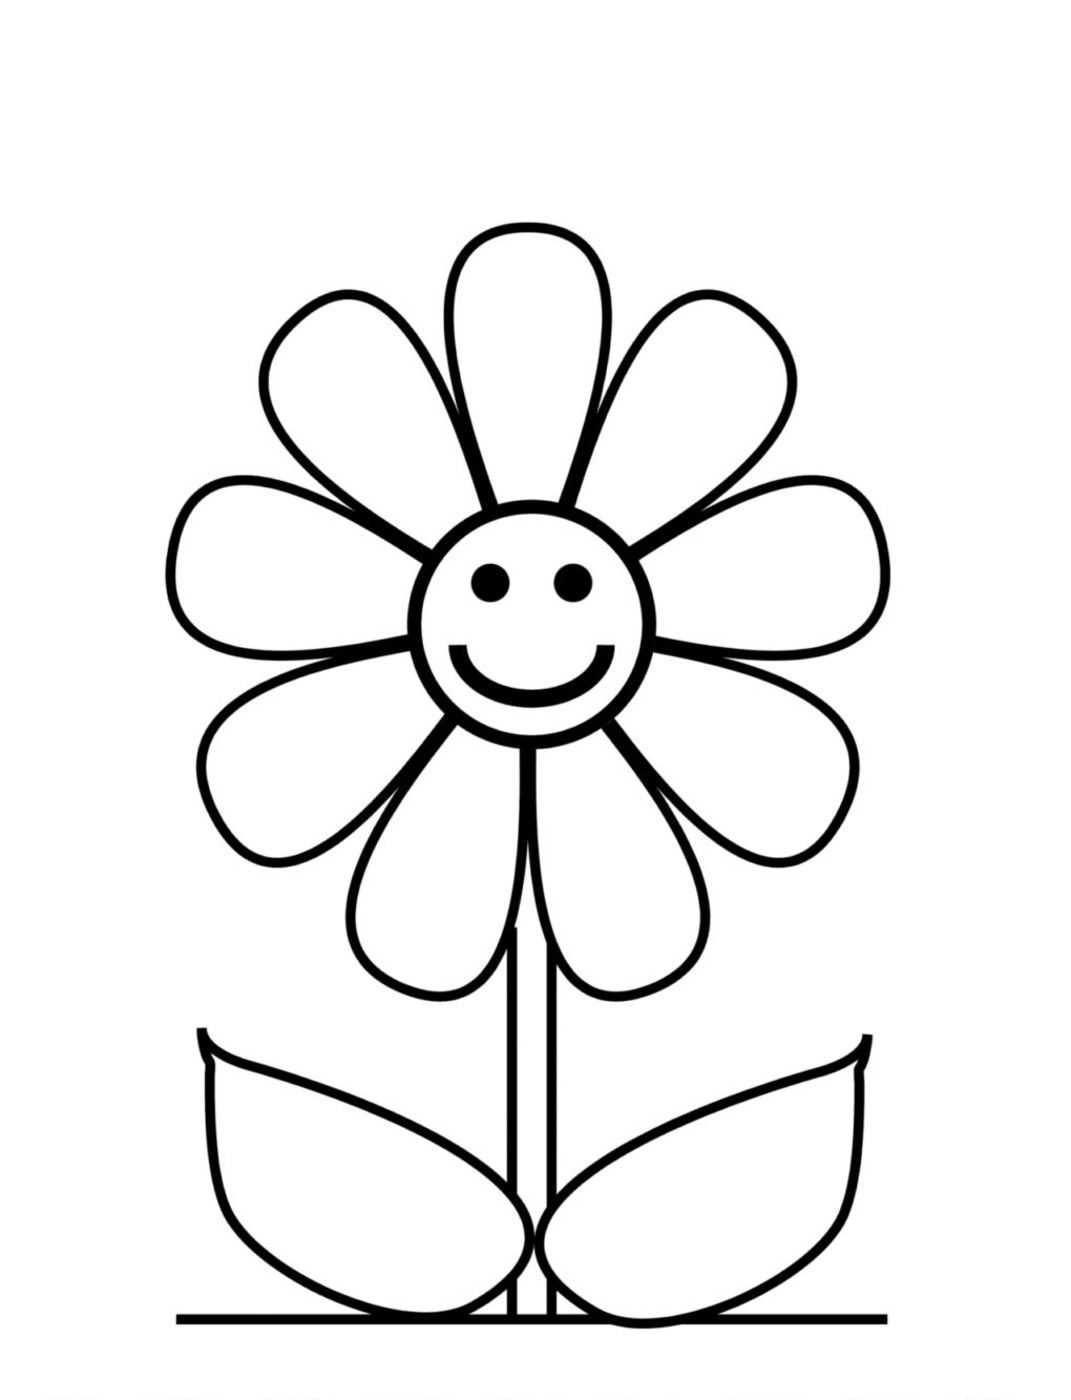 Flower Coloring Pages Coloring Town Easy Flower Drawings Flower Coloring Sheets Flower Coloring Pages